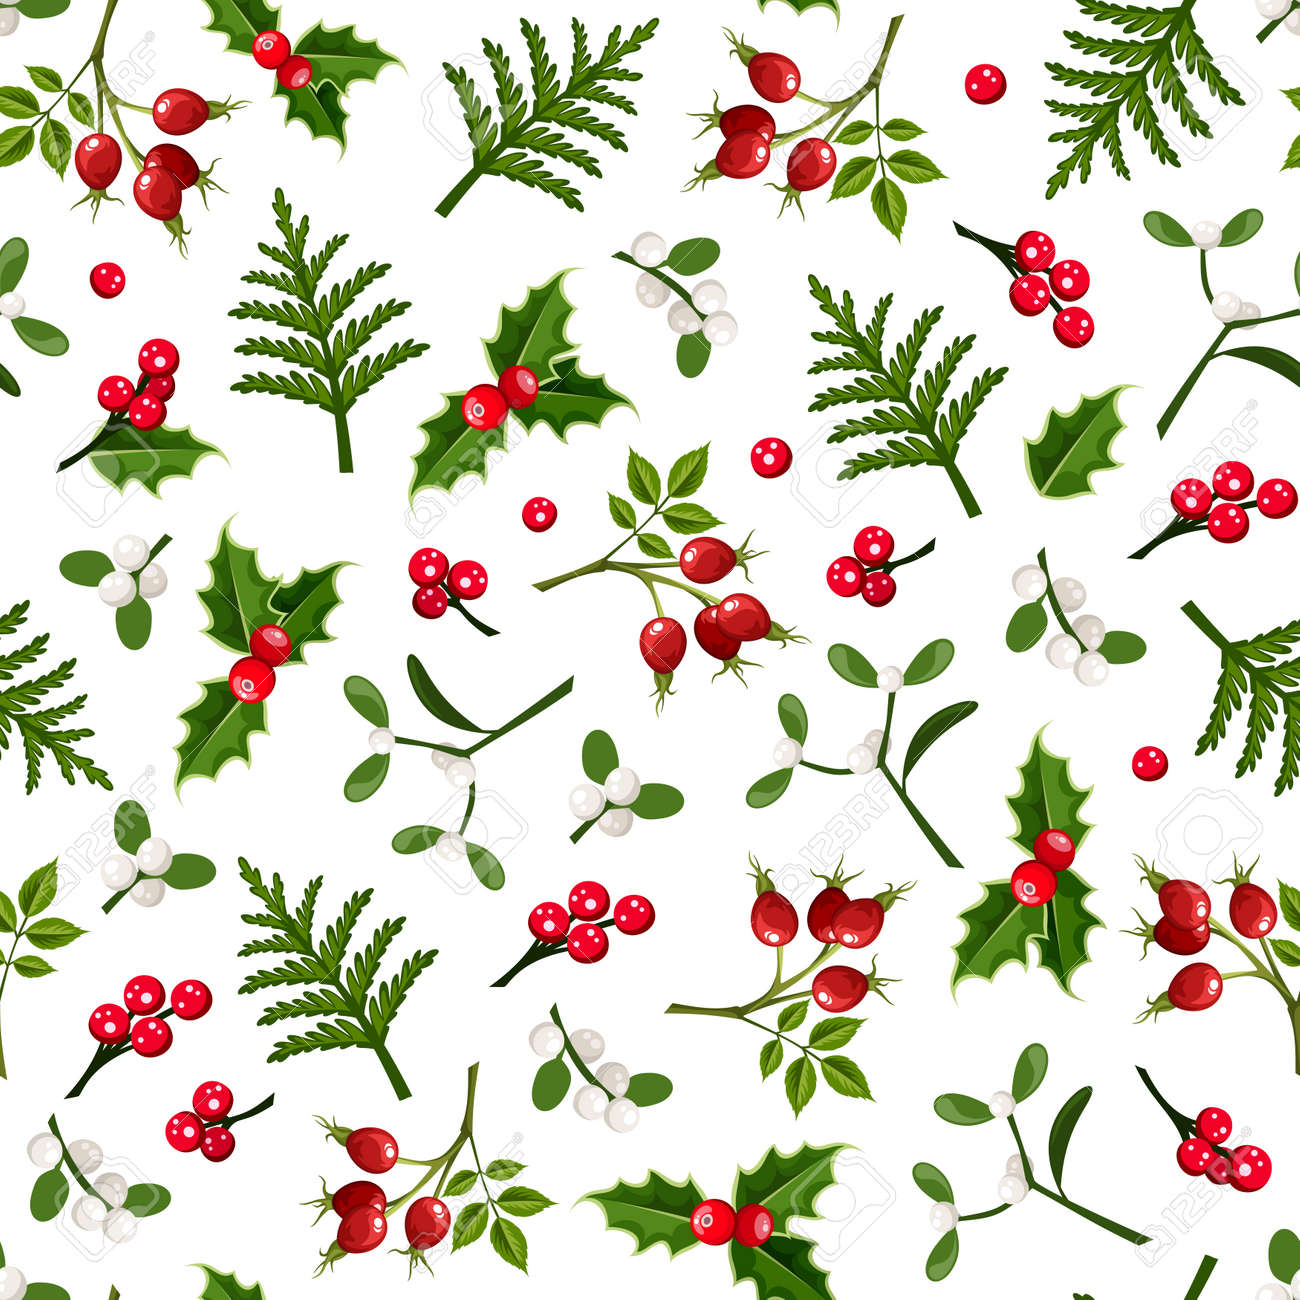 Vector Christmas floral seamless pattern with holly, mistletoe, rosehip and fir branches on a white background. - 159090705